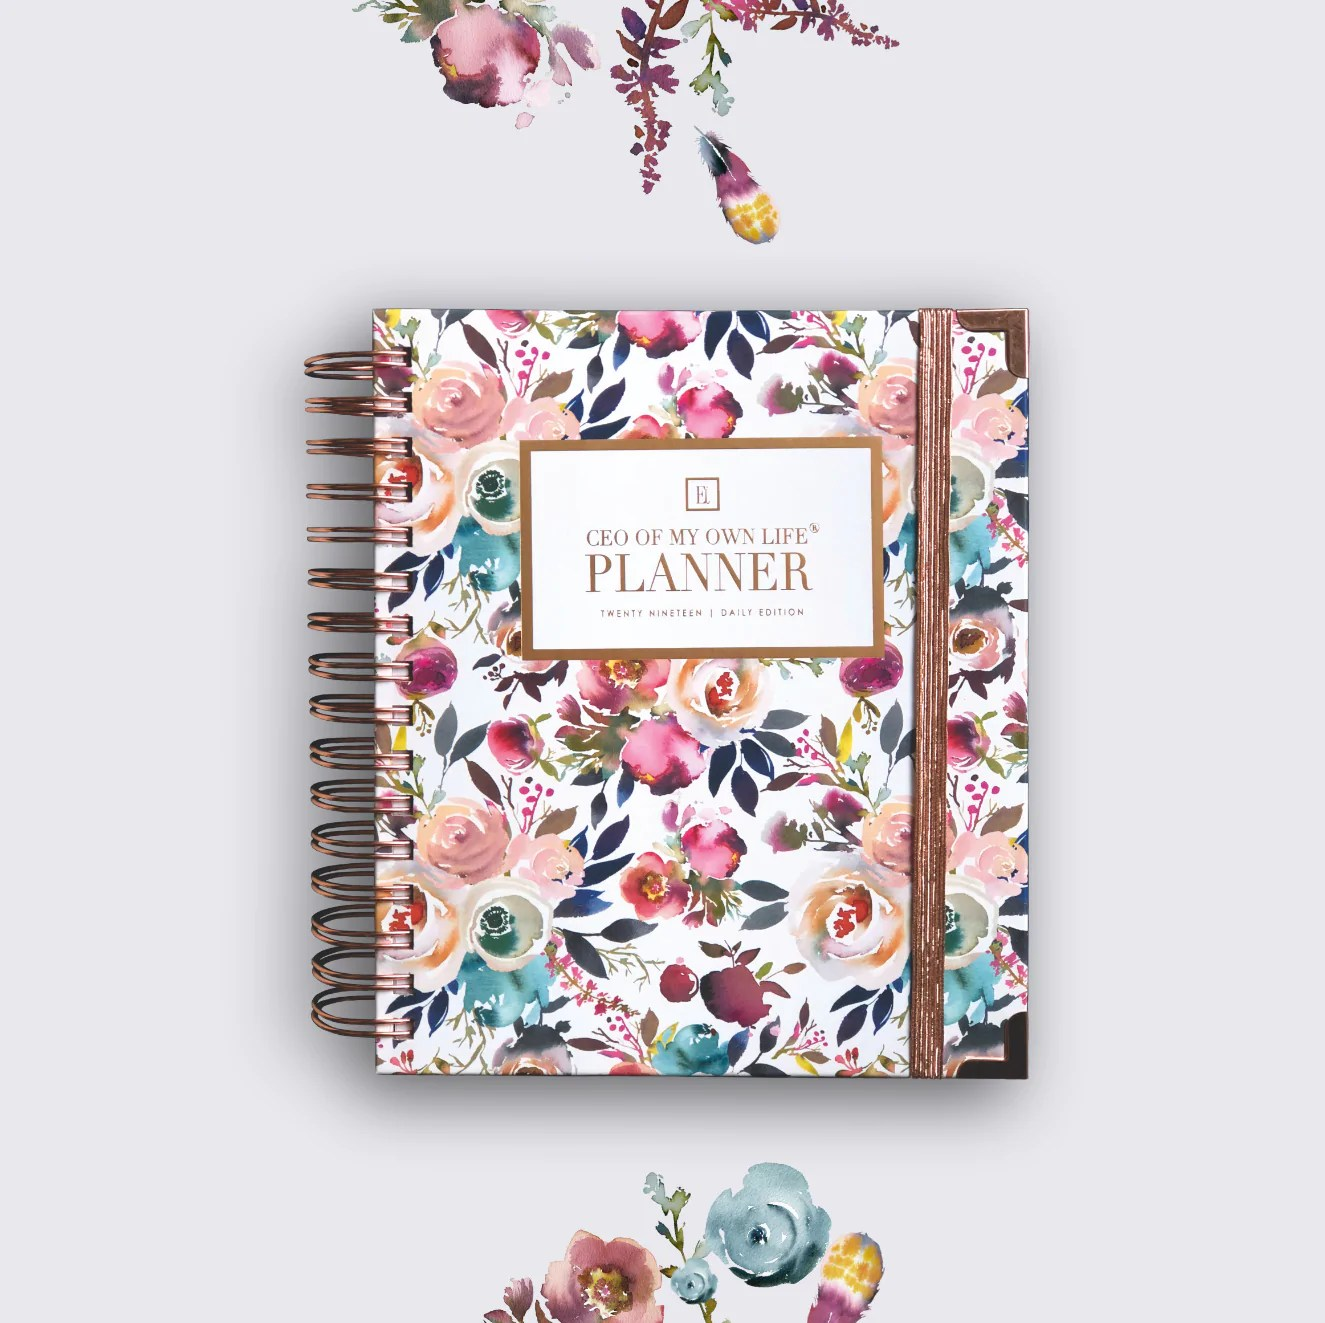 2019 Daily | CEO OF MY OWN LIFE® Planner | Blossom – Ella ...